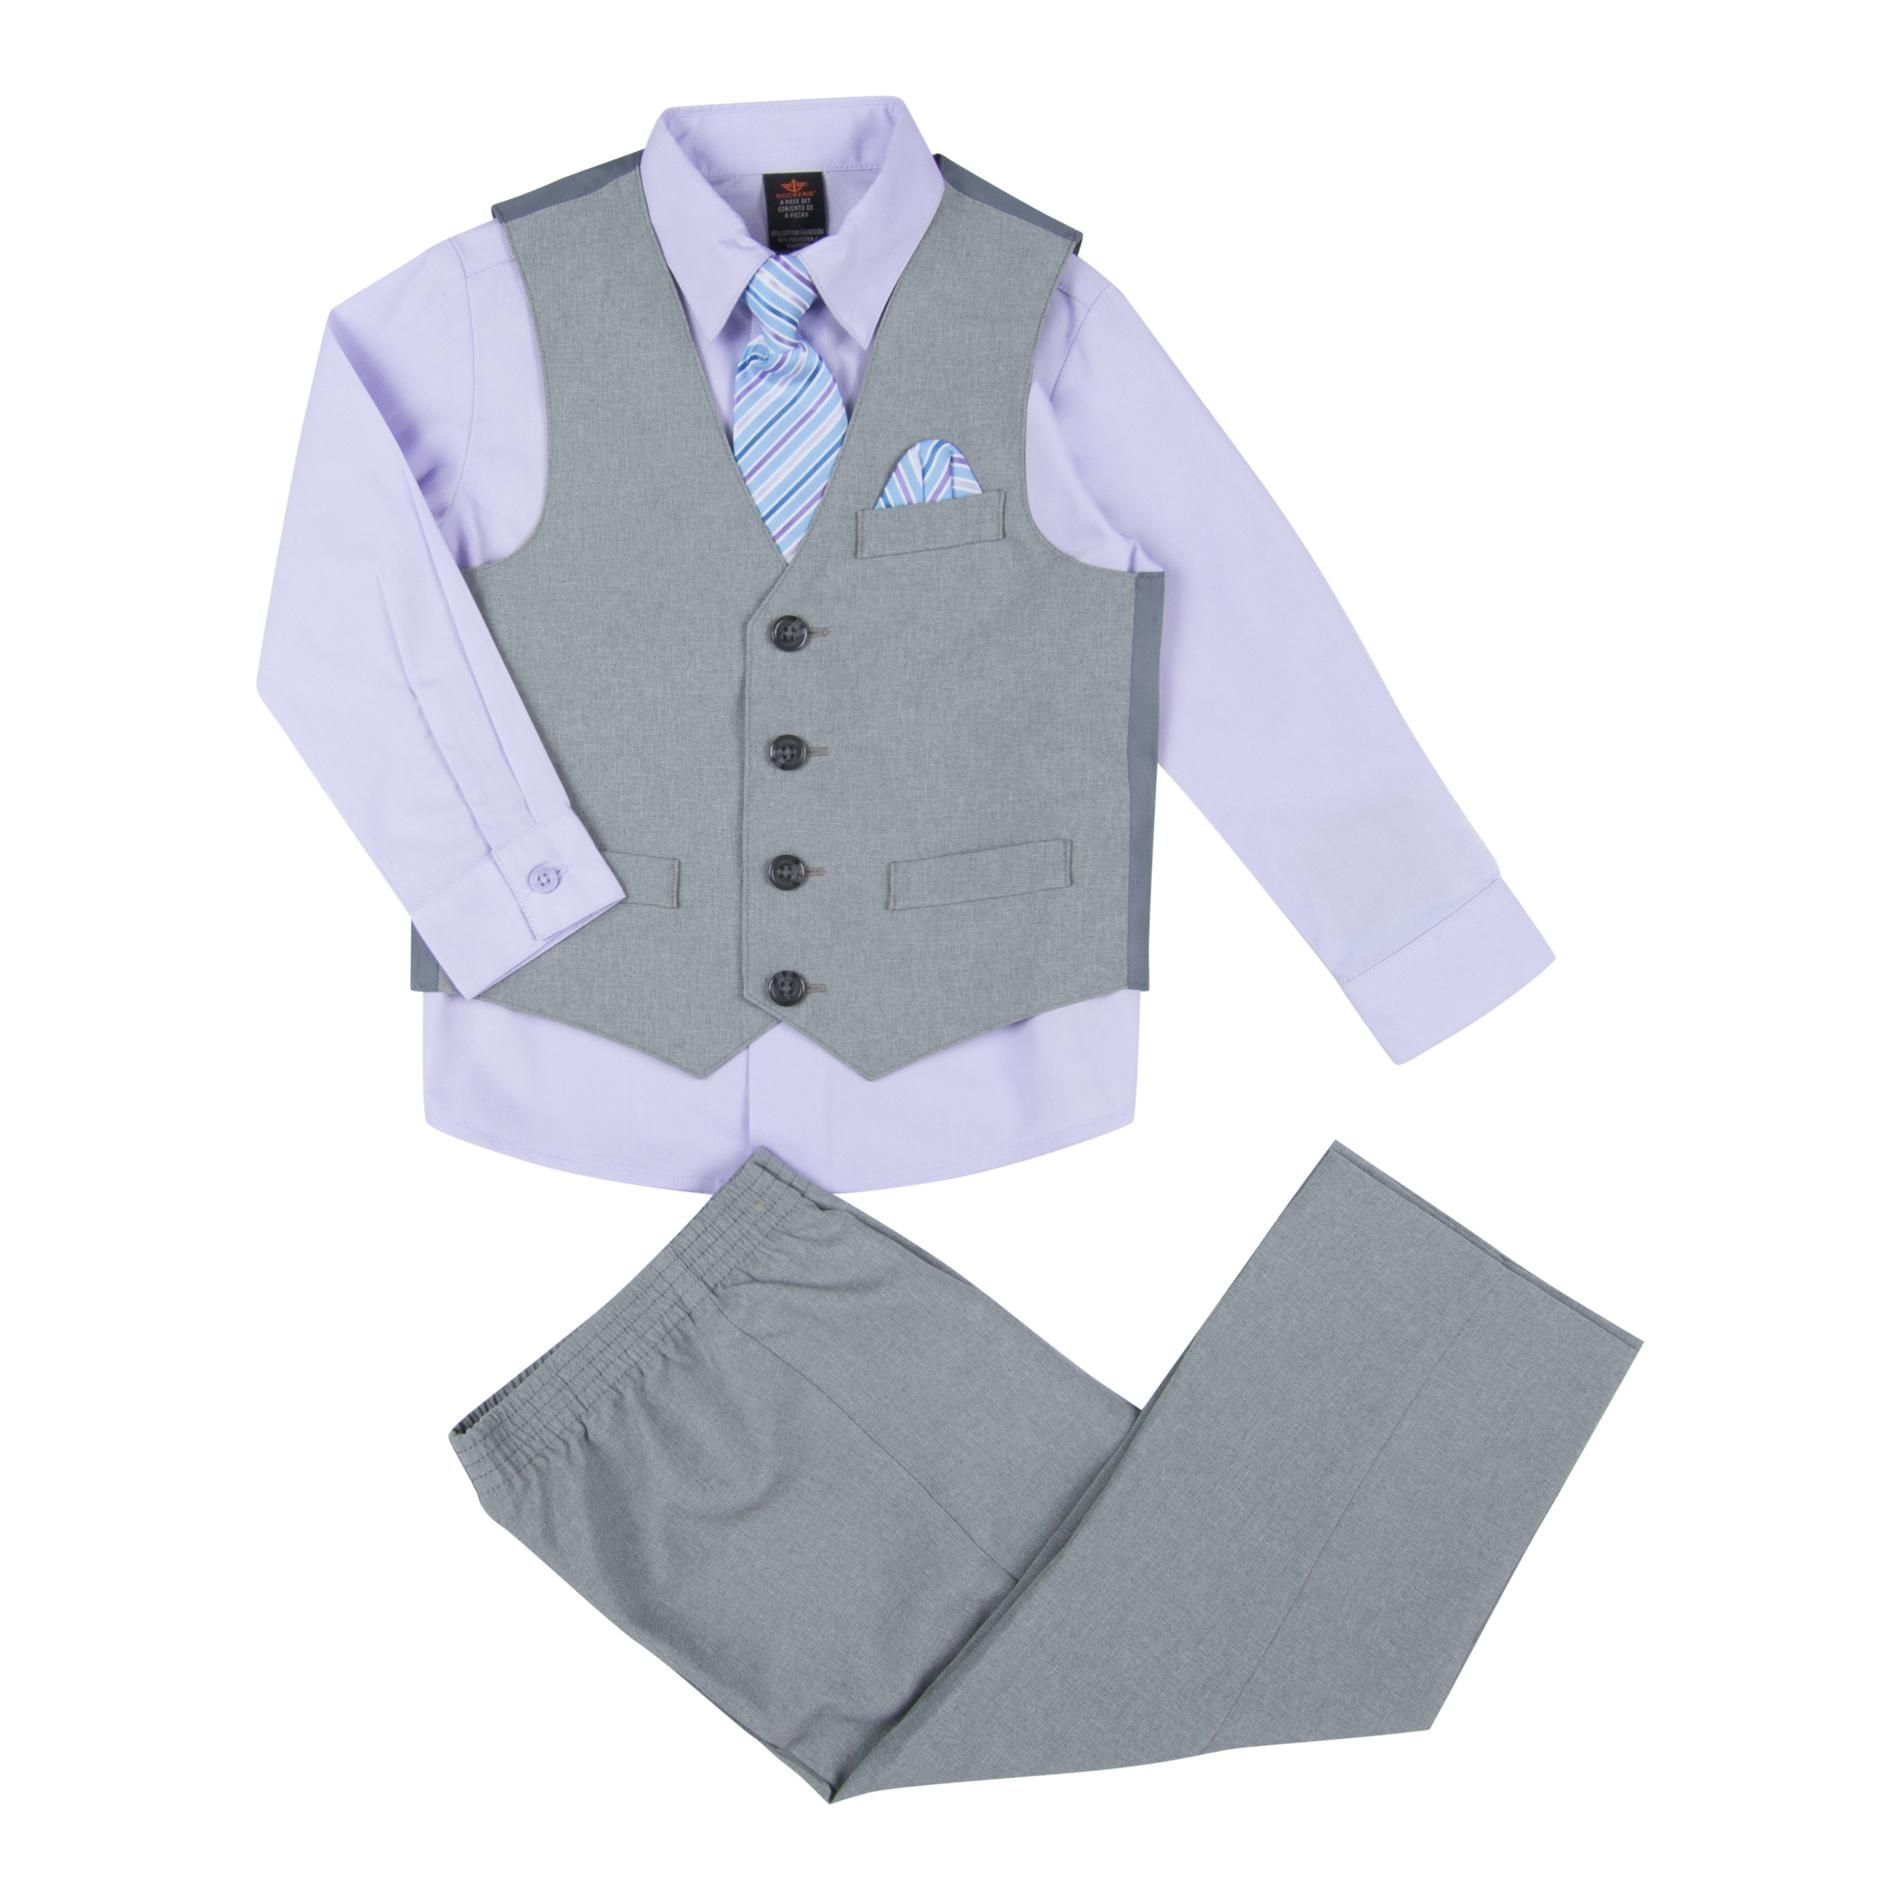 Toddler boy dress clothes for wedding  Sears  Online  Wedding Dreams  Pinterest  Wedding and Weddings